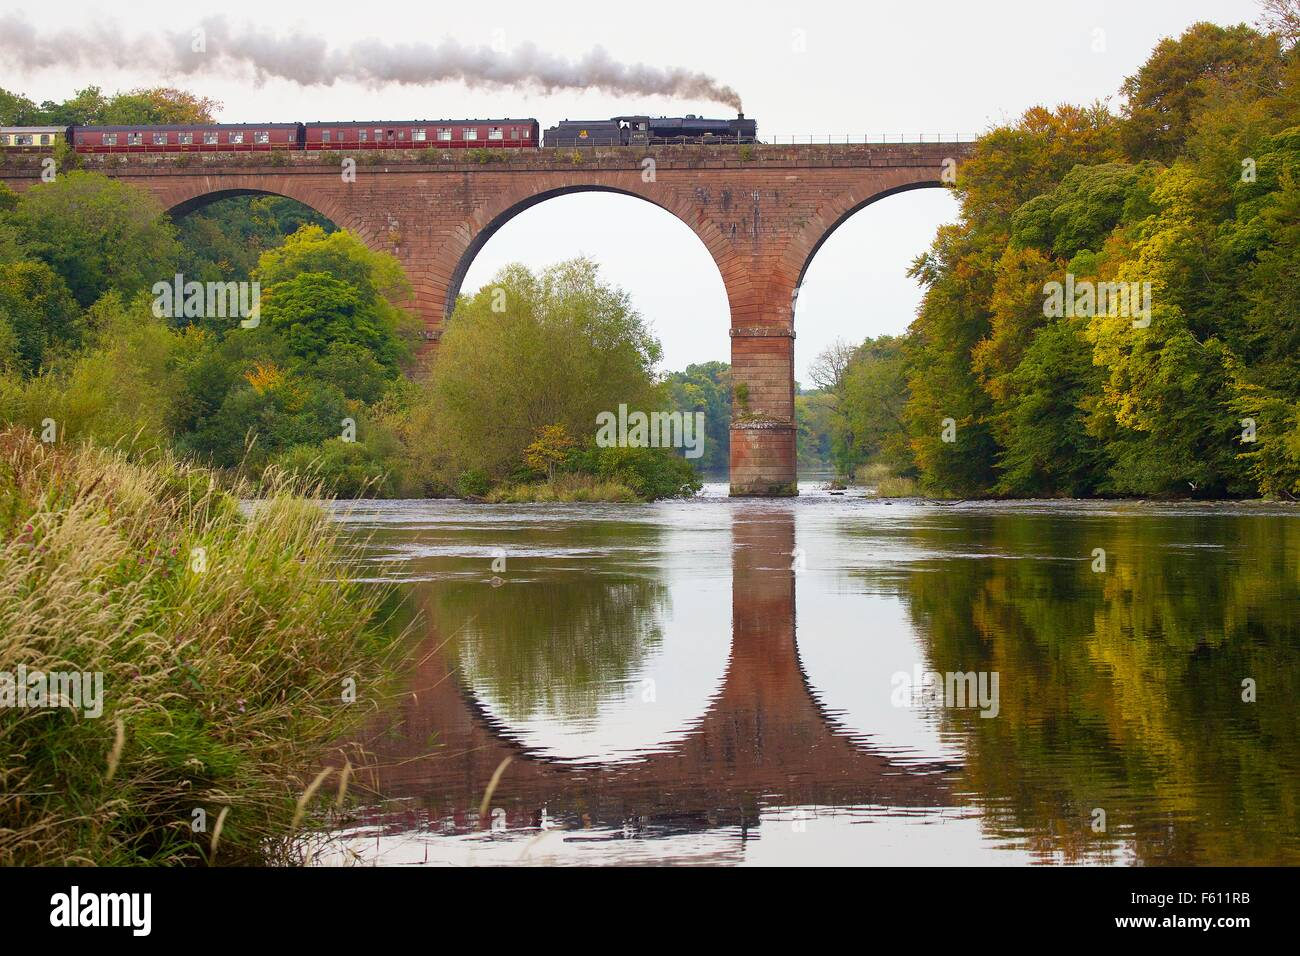 Steam locomotive LMS Jubilee Class Leander 45690. Wetheral Viaduct Eden, Wetheral, Carlisle, Cumbria, UK. - Stock Image